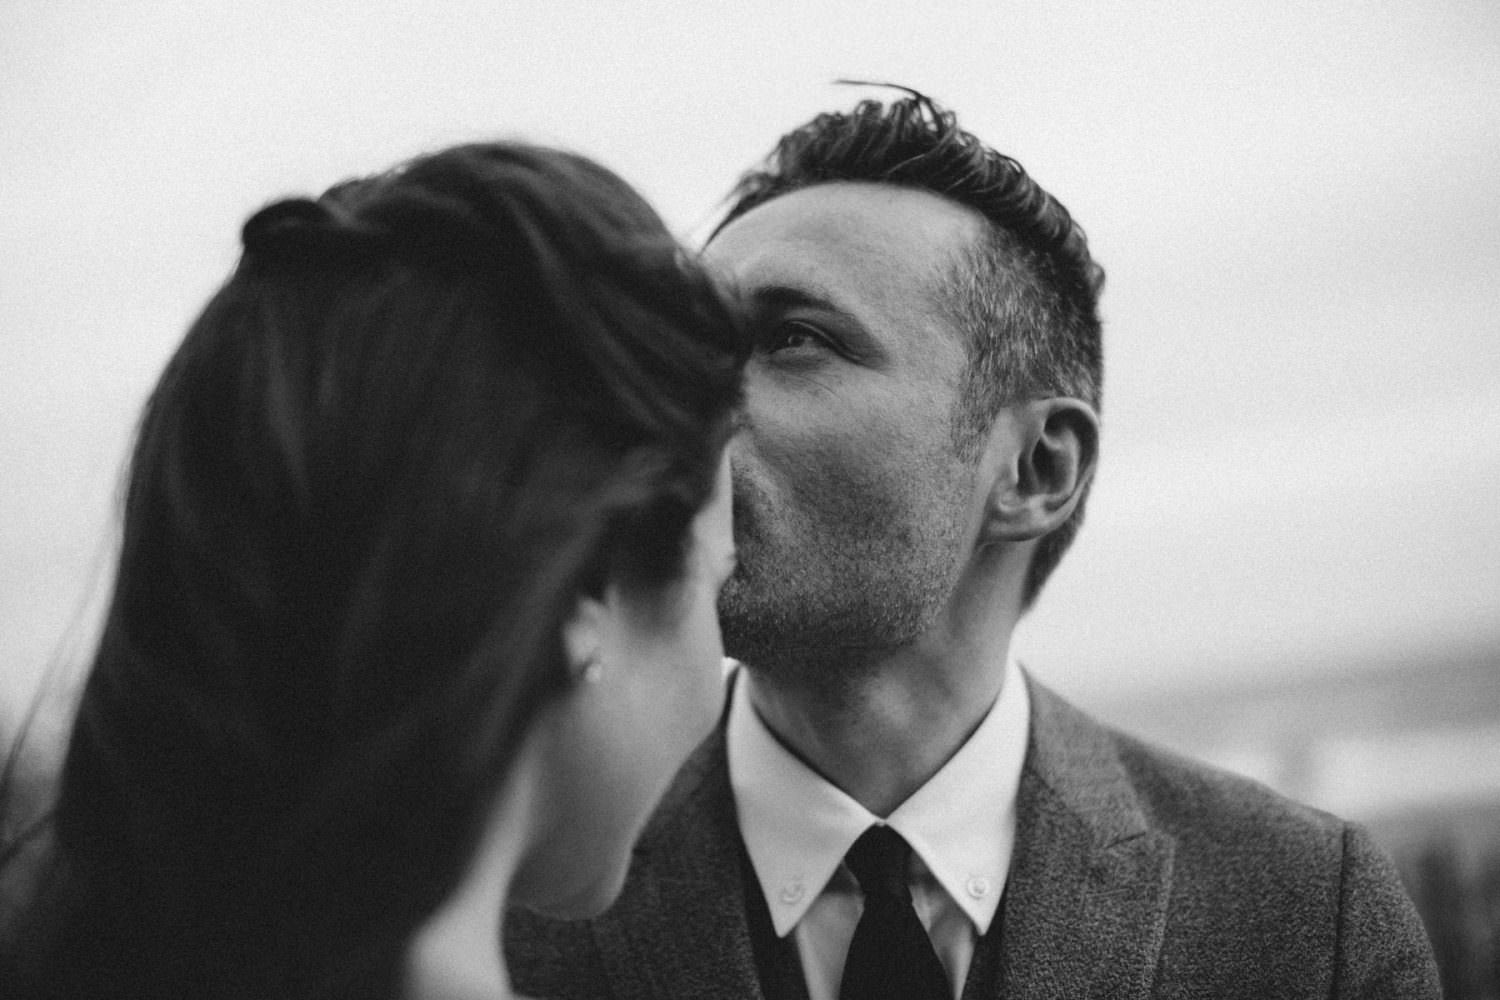 Groom kissing his bride on the forehead after their ceremony